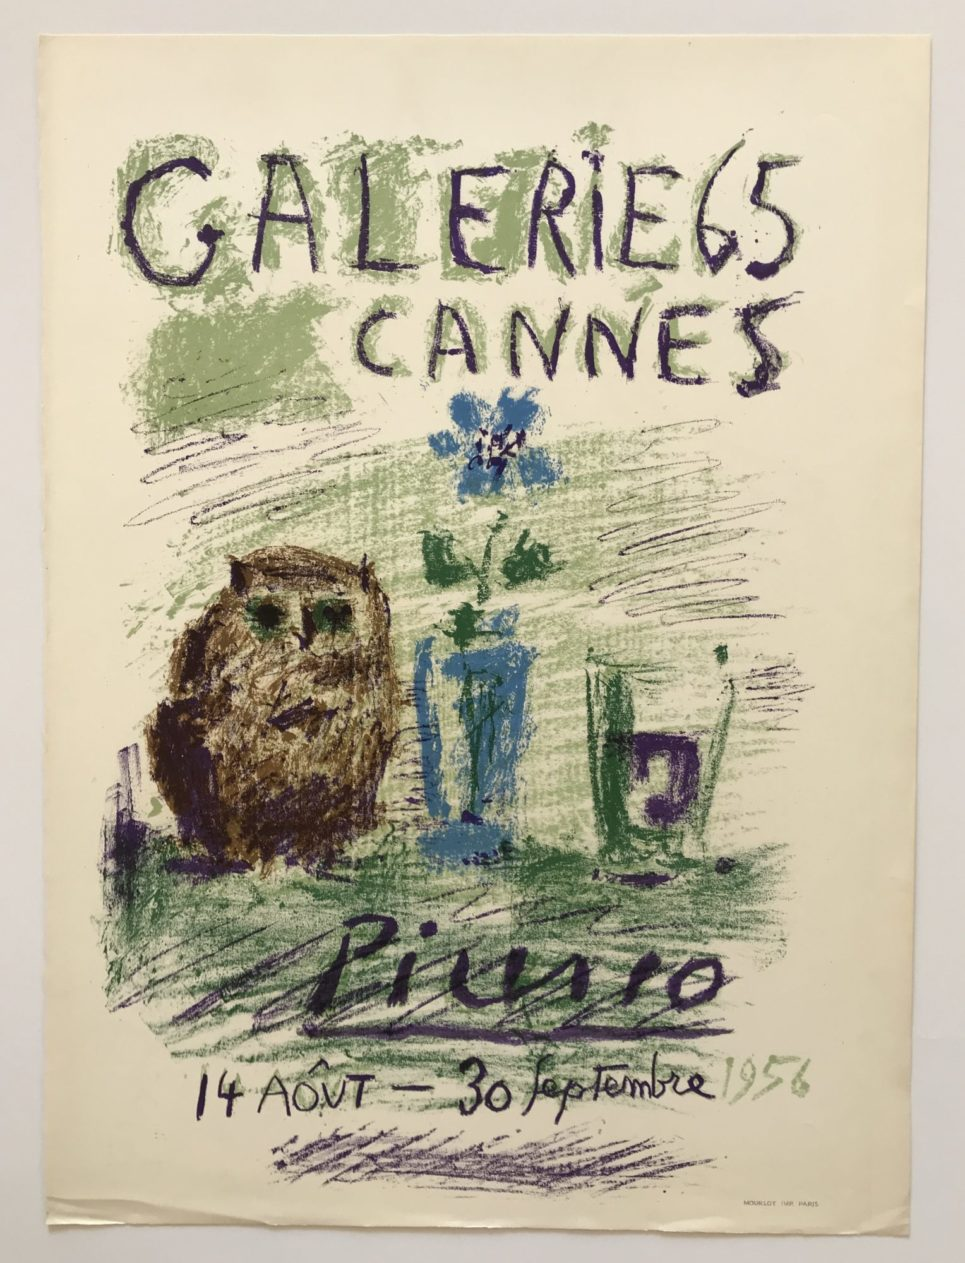 pablo-picasso-galerie-65-cannes-full-paper